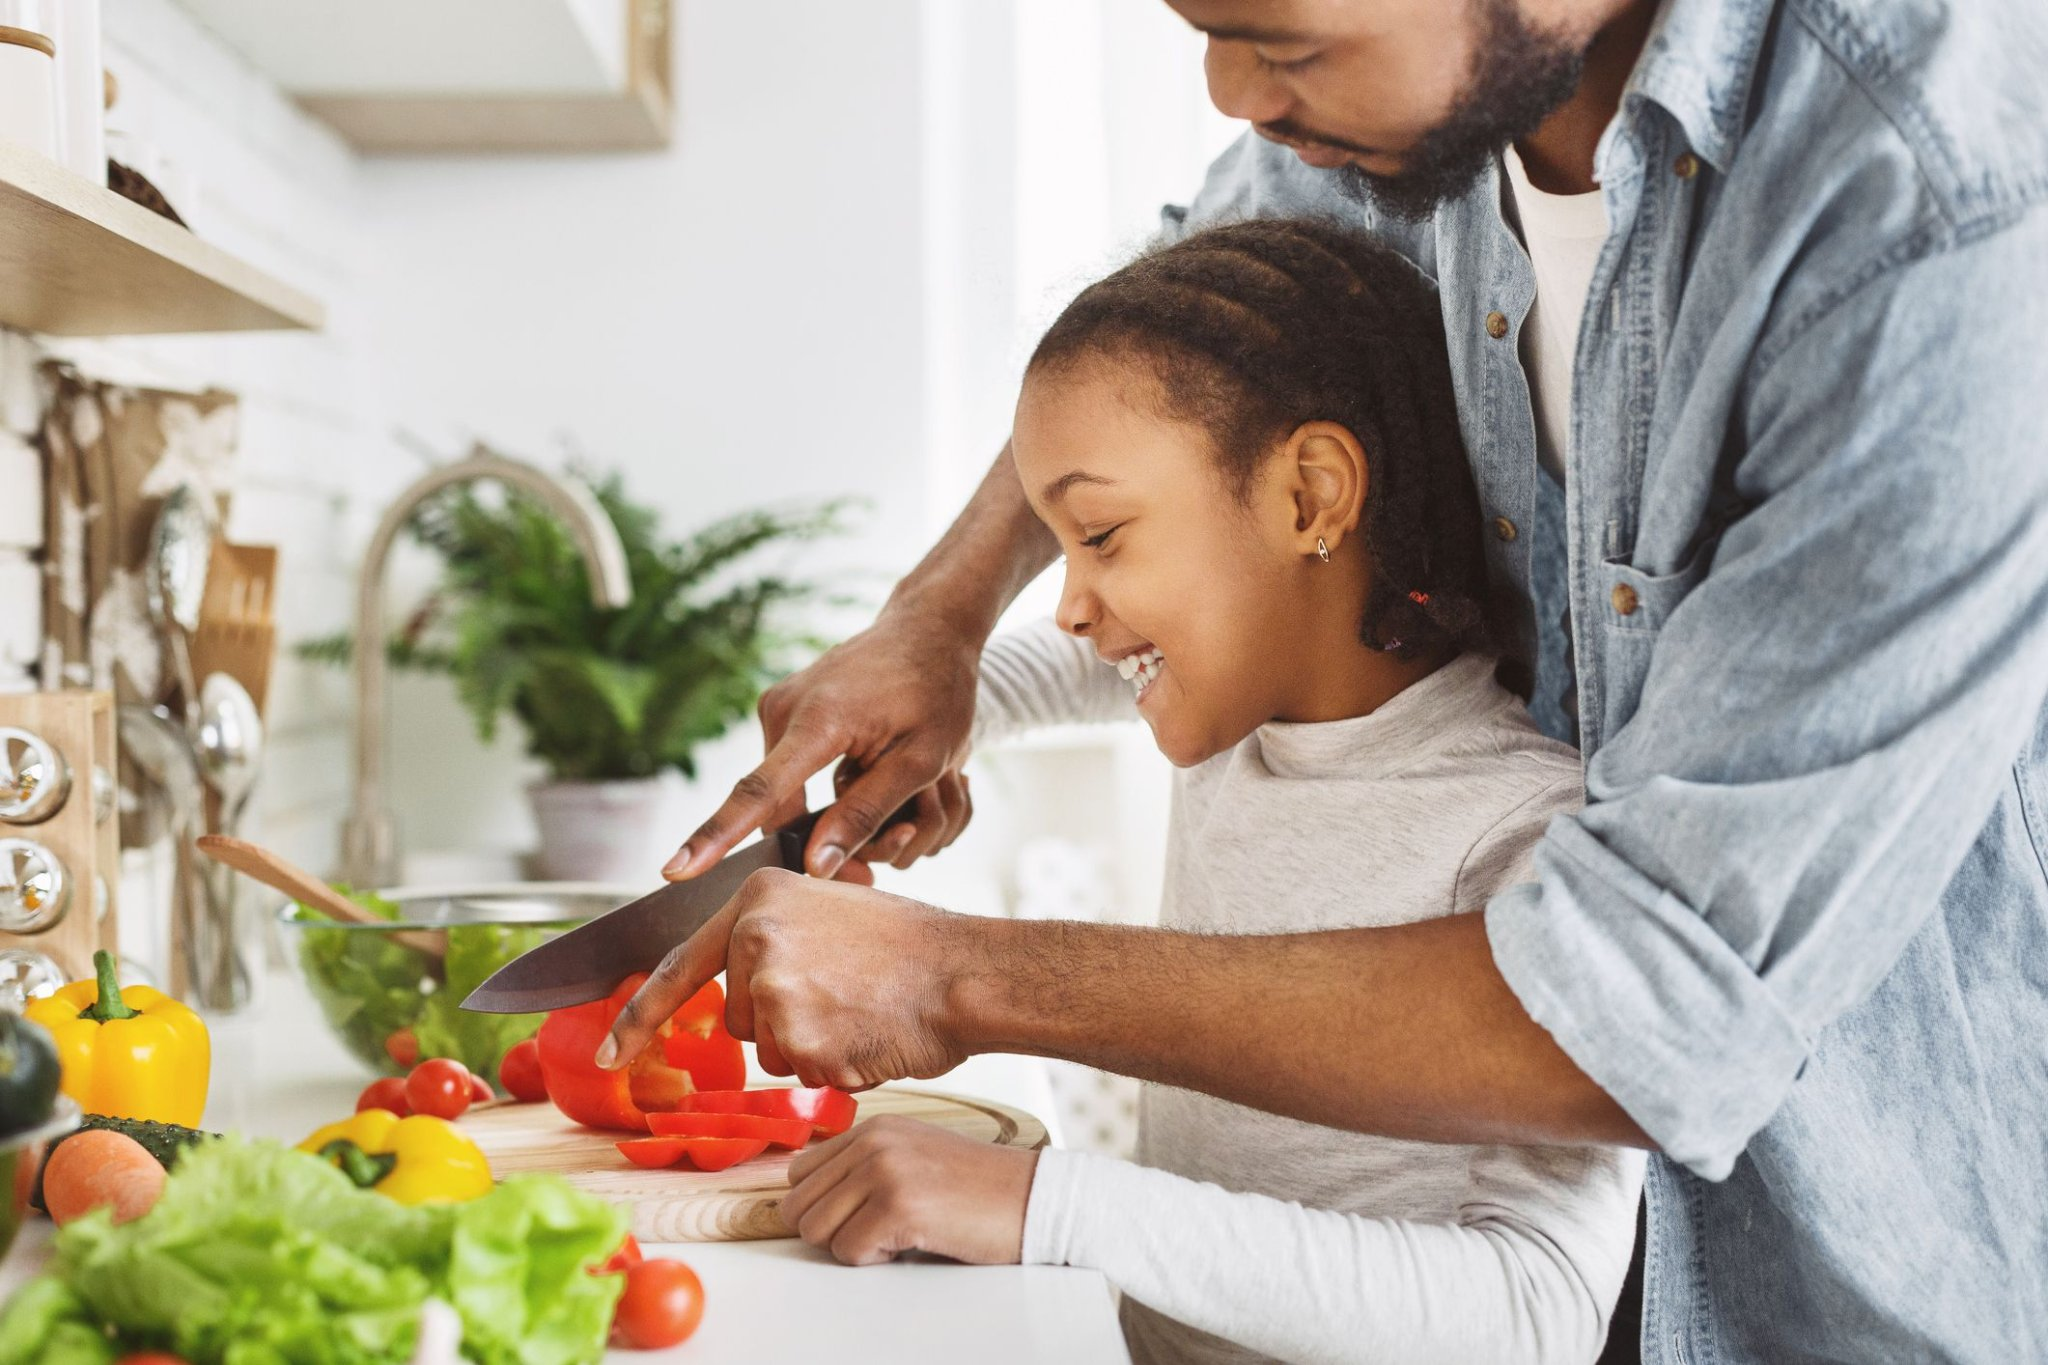 How to Cook With Kids: A Guide for Being in the Kitchen With All Ages